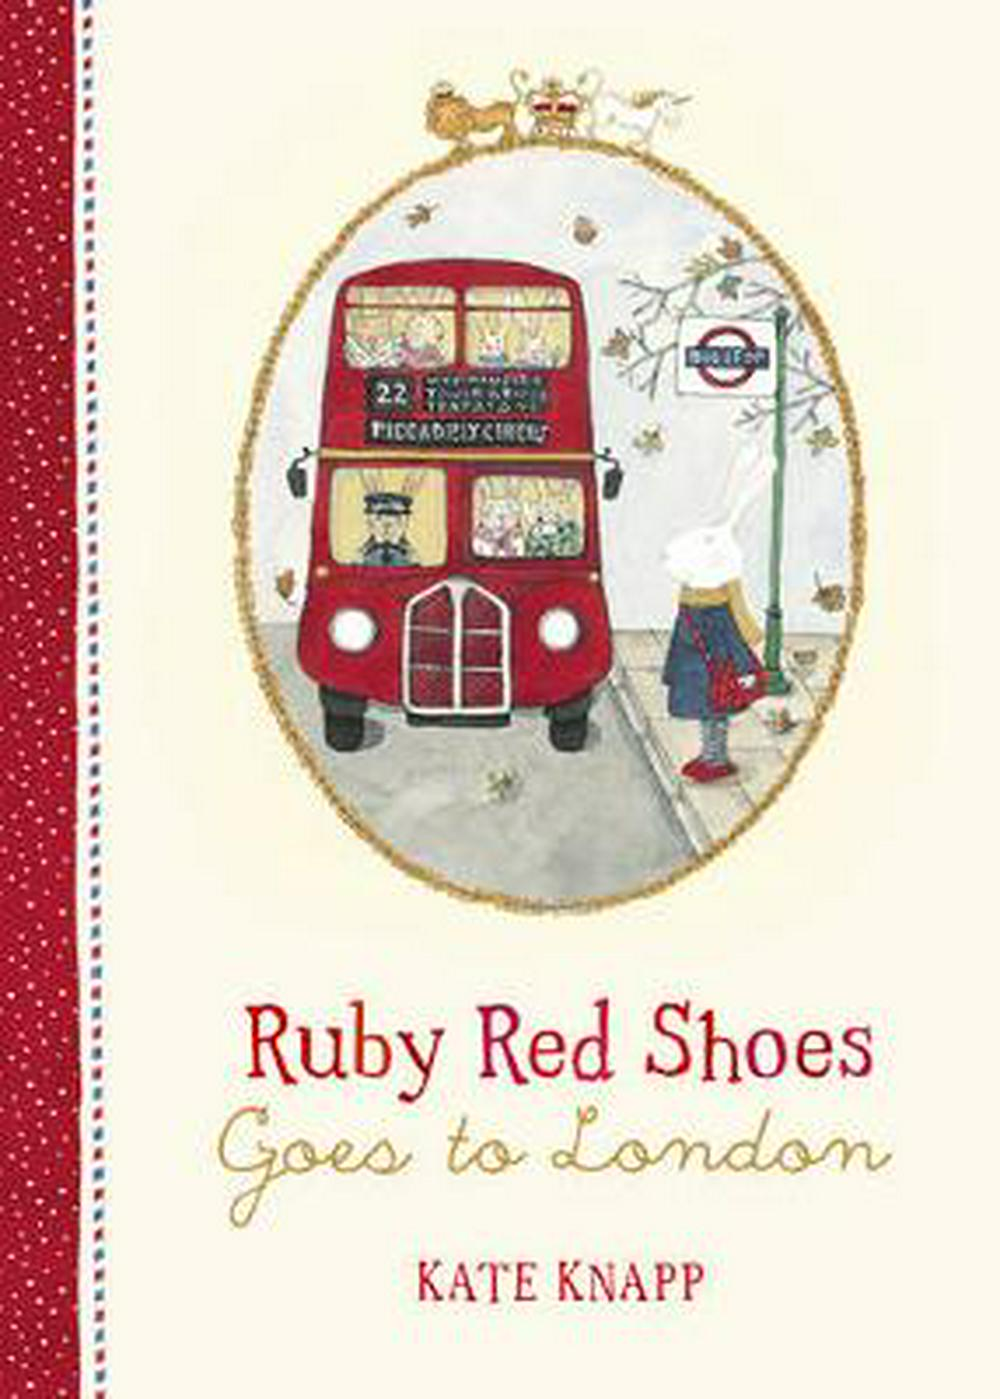 Ruby Red Shoes Goes to London by Kate Knapp, ISBN: 9780732297626